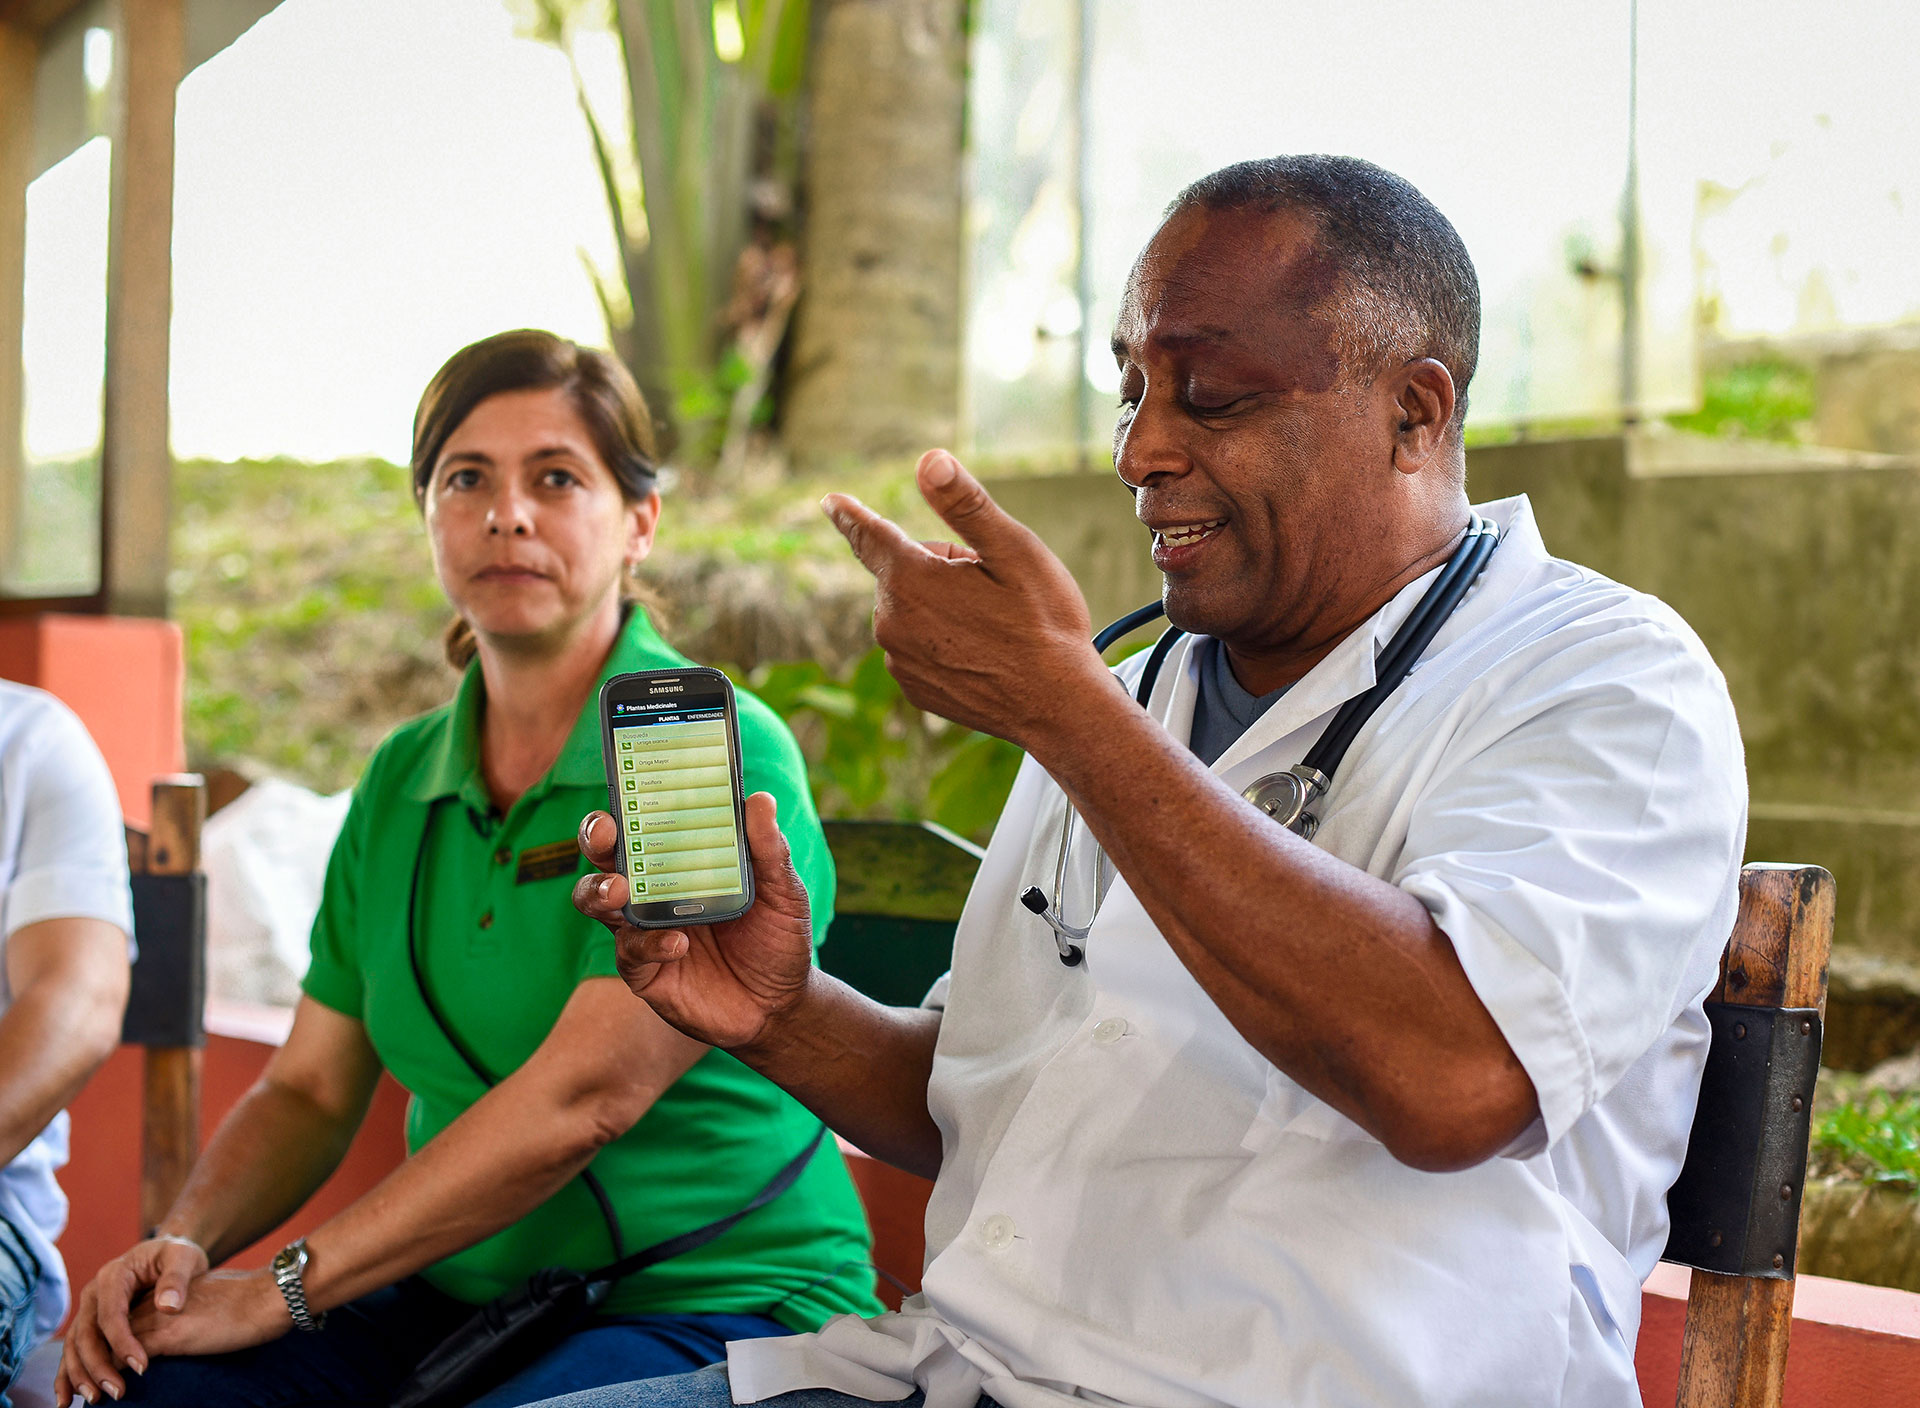 Dr. Rodobaldo Pedroso (right) demonstrates a smartphone app compiling names and uses of medicinal plants next to Idalmis Pe'rez (left) at Las Terrazas on March 3, 2019. The app is one example of traditional medicine's place in Cuba's culture amid technological advancements. (Photo by Estelle De Zan/GroundTruth)